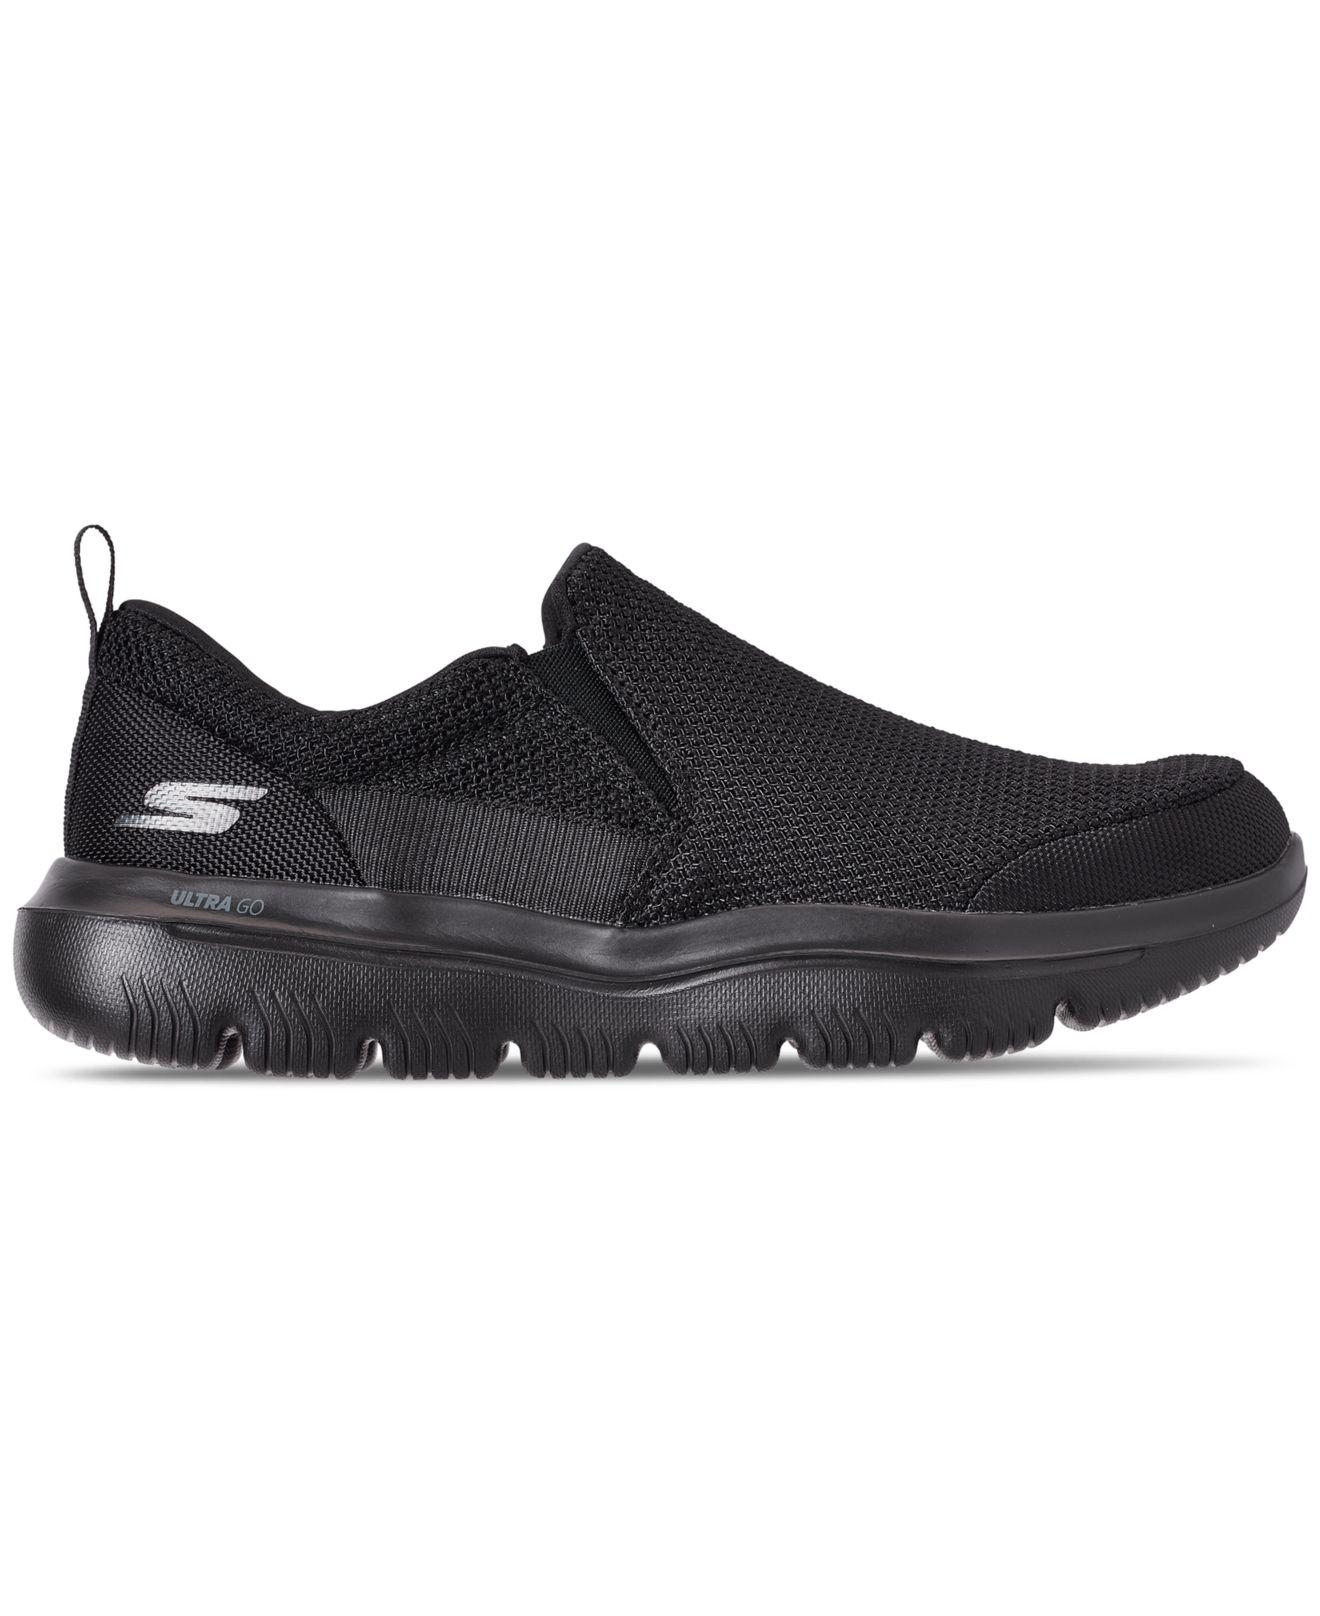 df3821d44b3f Lyst - Skechers Gowalk Evolution Ultra - Impeccable Slip-on Walking  Sneakers From Finish Line in Black for Men - Save 17%